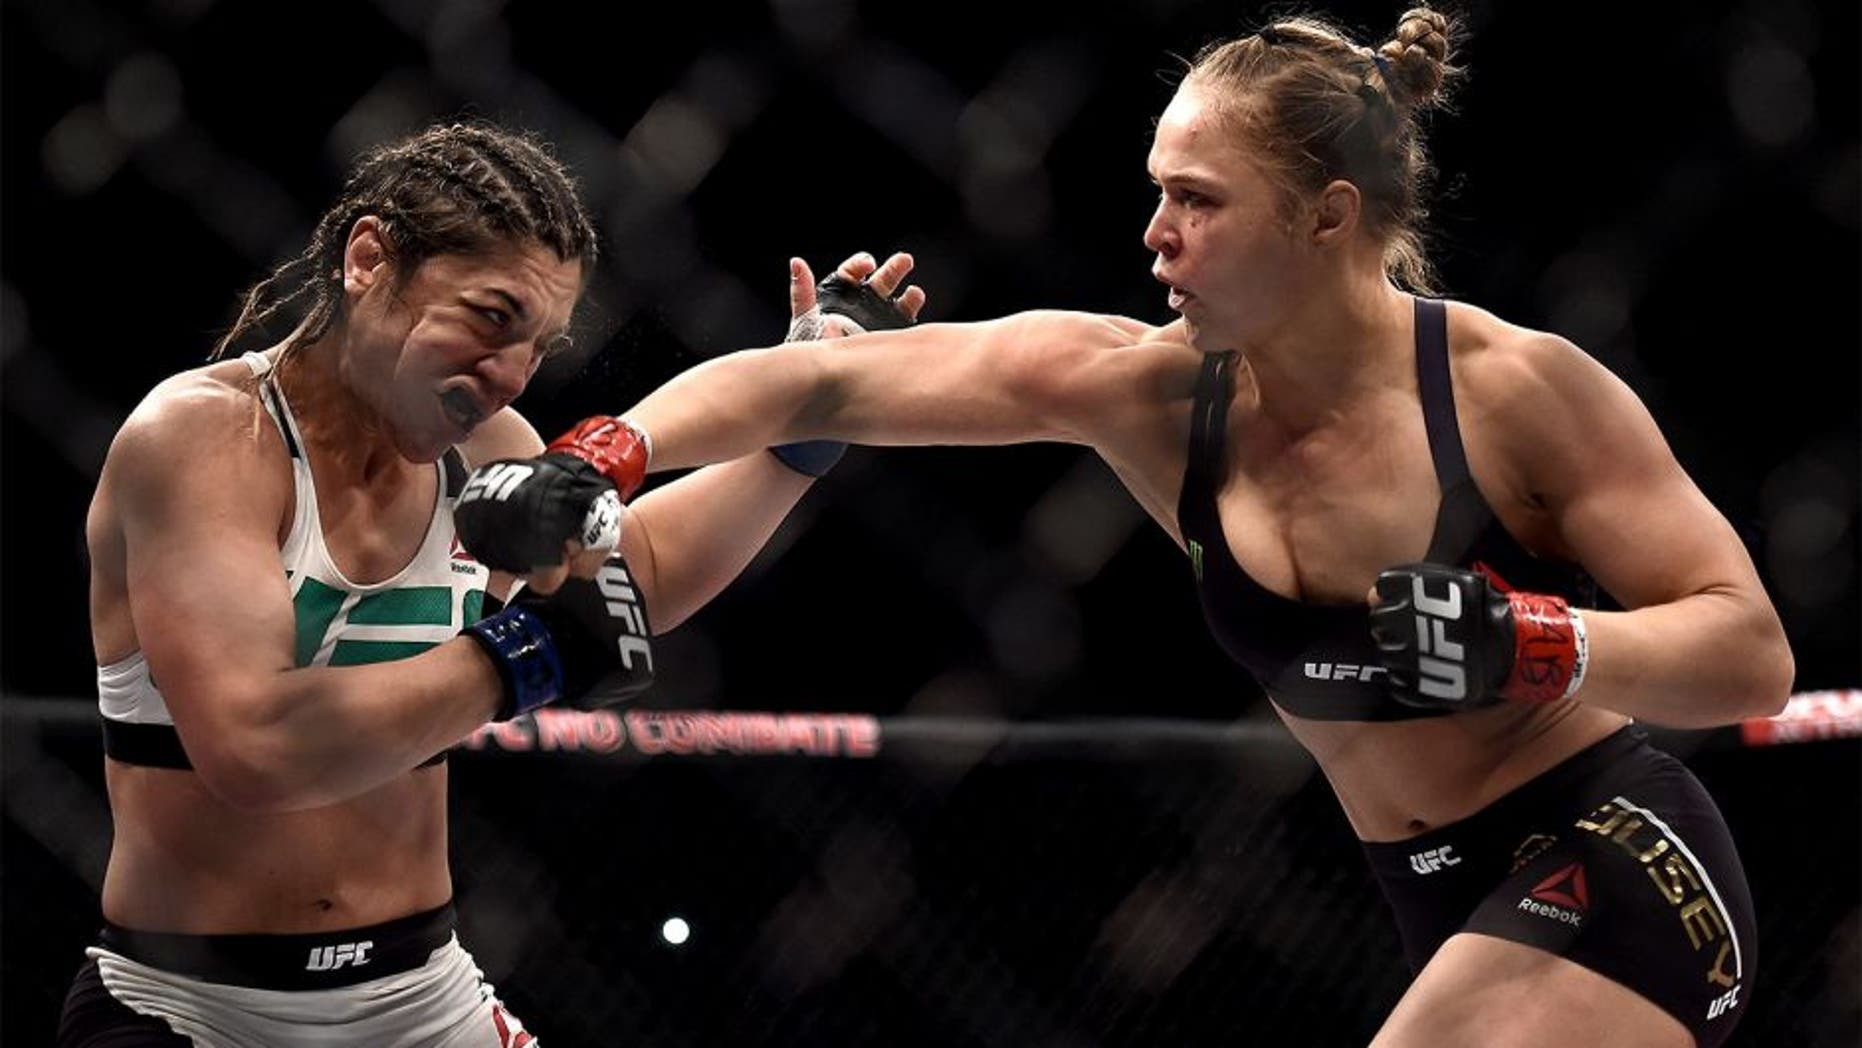 RIO DE JANEIRO, BRAZIL - AUGUST 01: Ronda Rousey of the United States punches Bethe Correia of Brazil in their bantamweight title fight during the UFC 190 Rousey v Correia at HSBC Arena on August 1, 2015 in Rio de Janeiro, Brazil. (Photo by Buda Mendes/Zuffa LLC/Zuffa LLC via Getty Images)